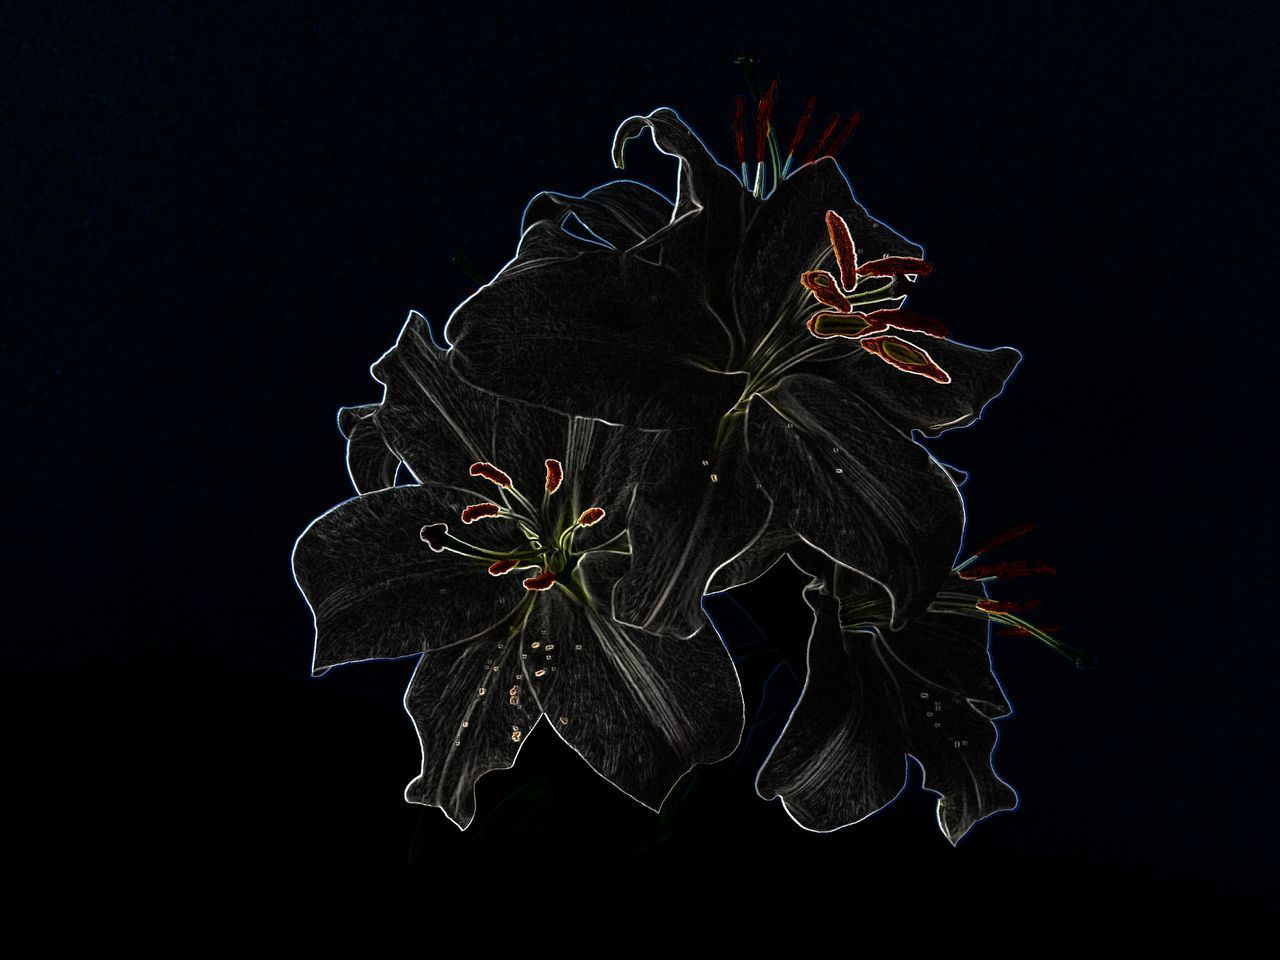 Black Background Fragility No People Petal Beauty In Nature Flowers, Nature And Beauty Flower Head Lilies Lily Flower Urban Lifestyle Flowers_collection Black Background White Flower Fleur De Lis Plant Indoors  Indoors  Artistic Photo Noirphotography Filtered Image Close-up Night Nature Flower Freshness